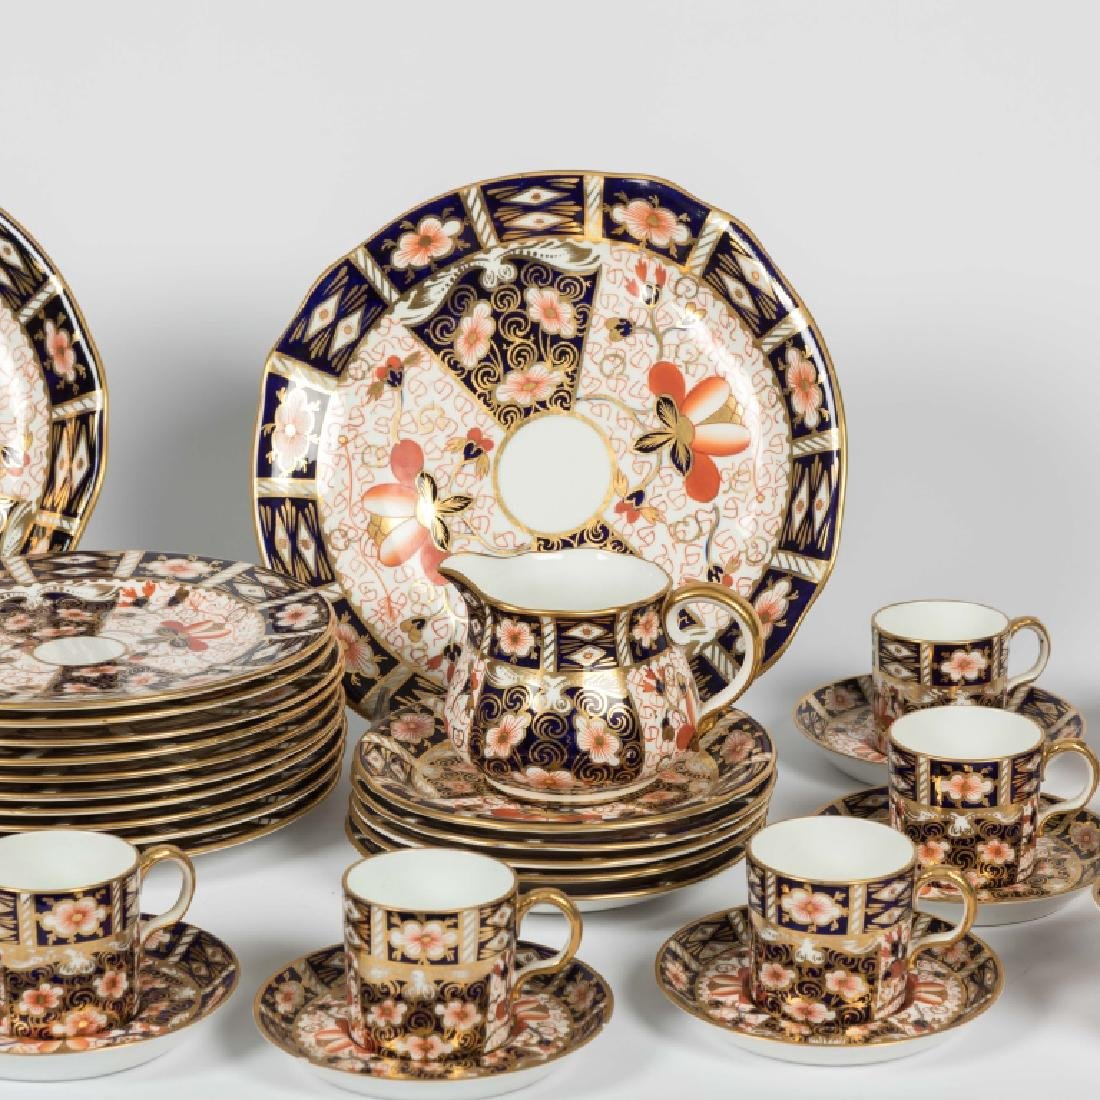 54 Piece Royal Crown Derby Old Imari Luncheon Set - 3